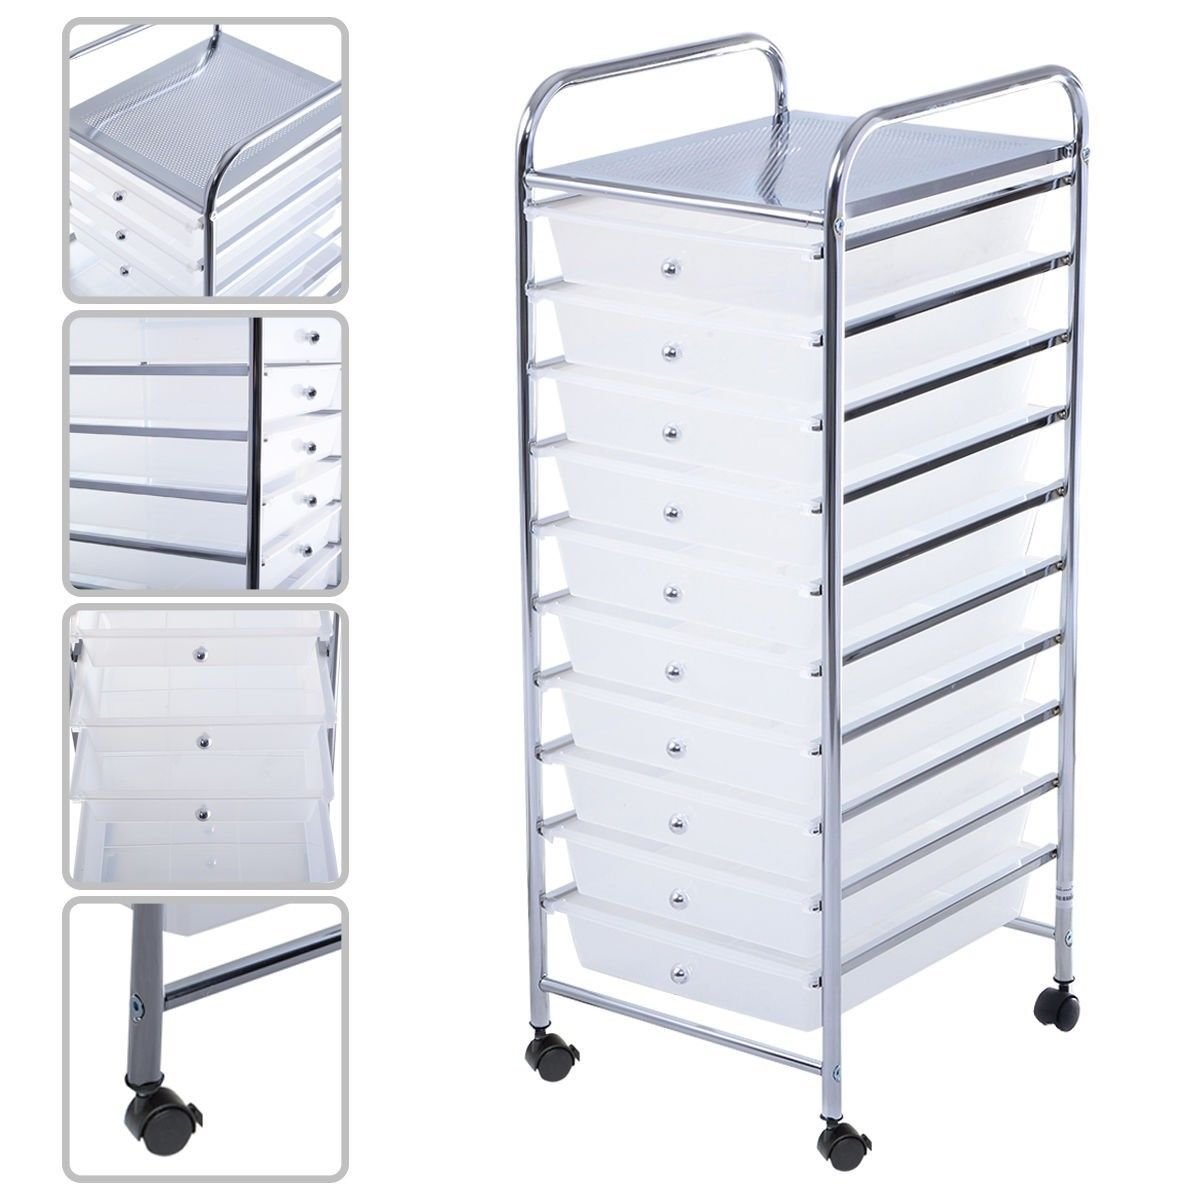 Moon_Daughter Files Tray Wheel Bins 10 Clear Drawer Rolling Storage File Supplies Organizer Office&Paper Craft Cart